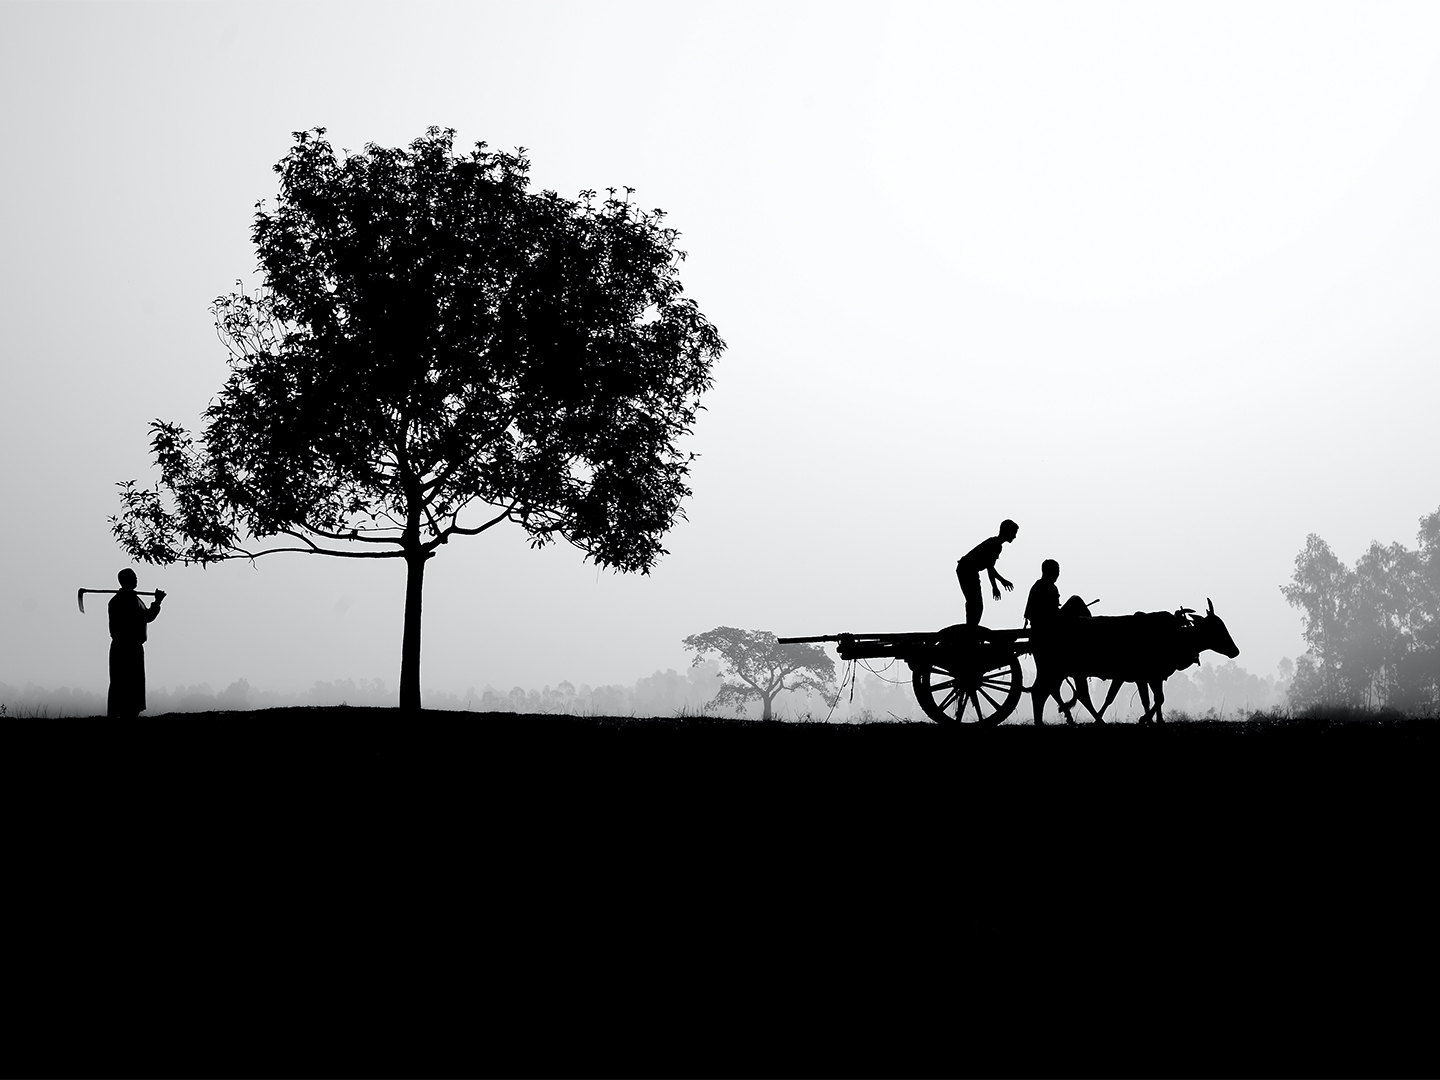 Ox cart in a field